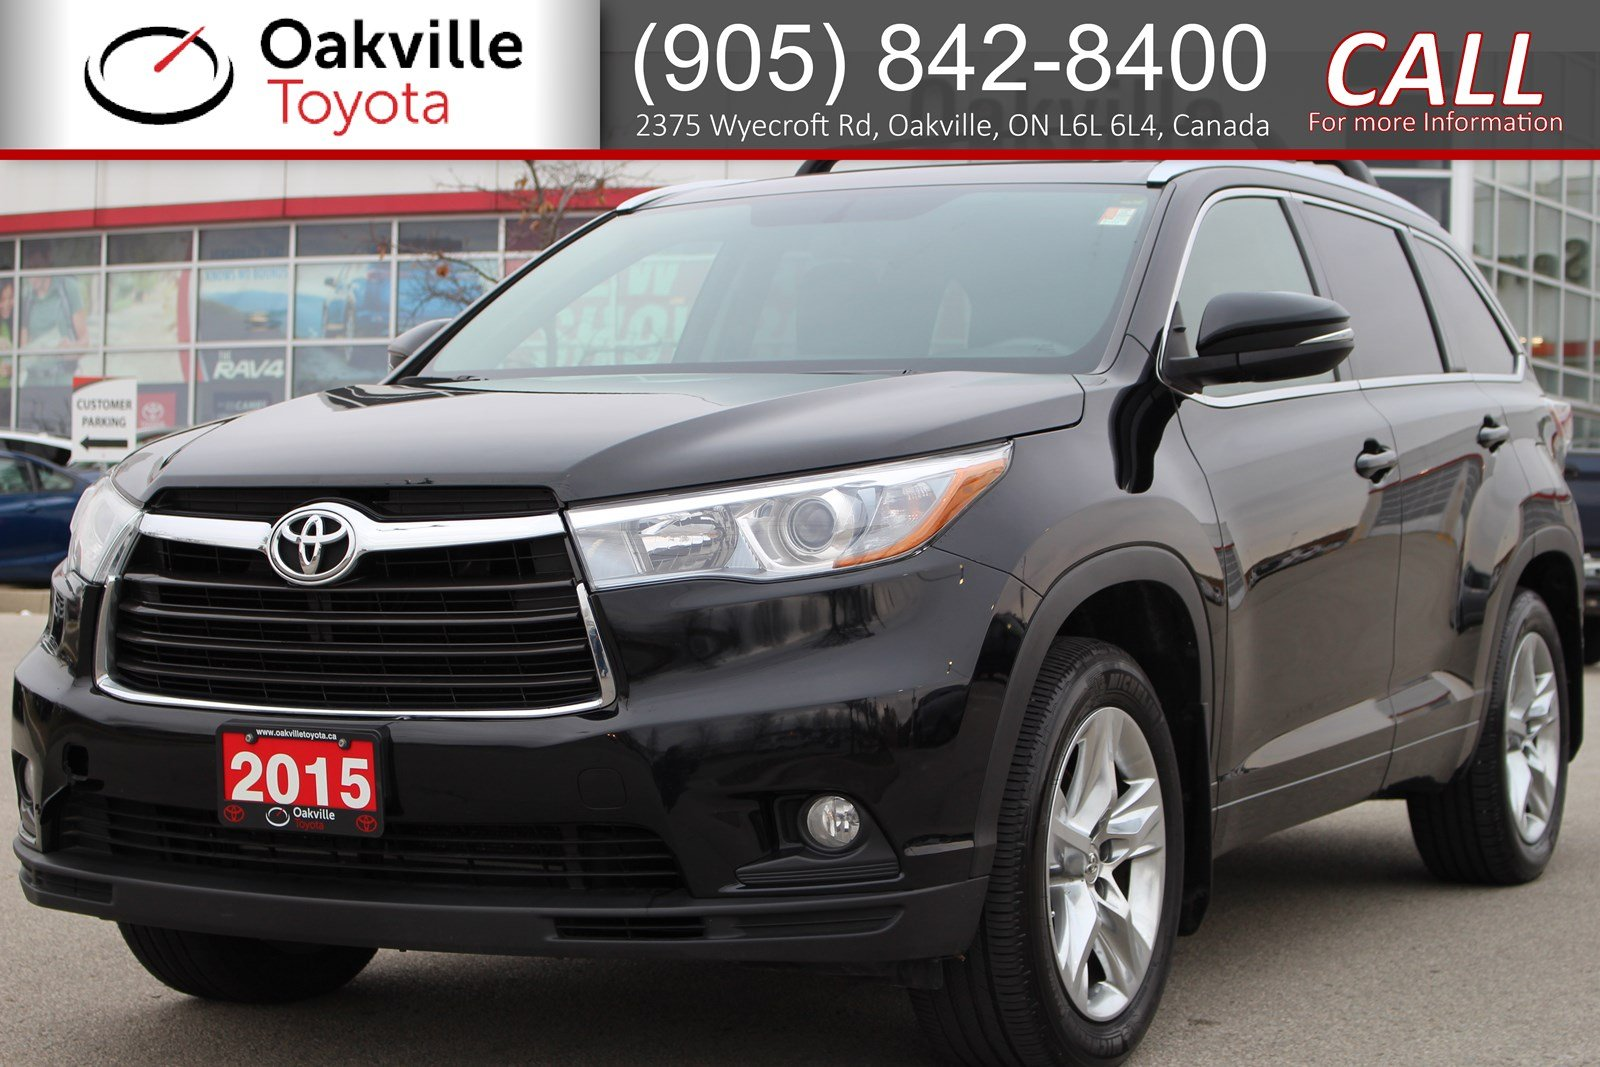 Pre-Owned 2015 Toyota Highlander Limited with Clean Carfax and Single Owner